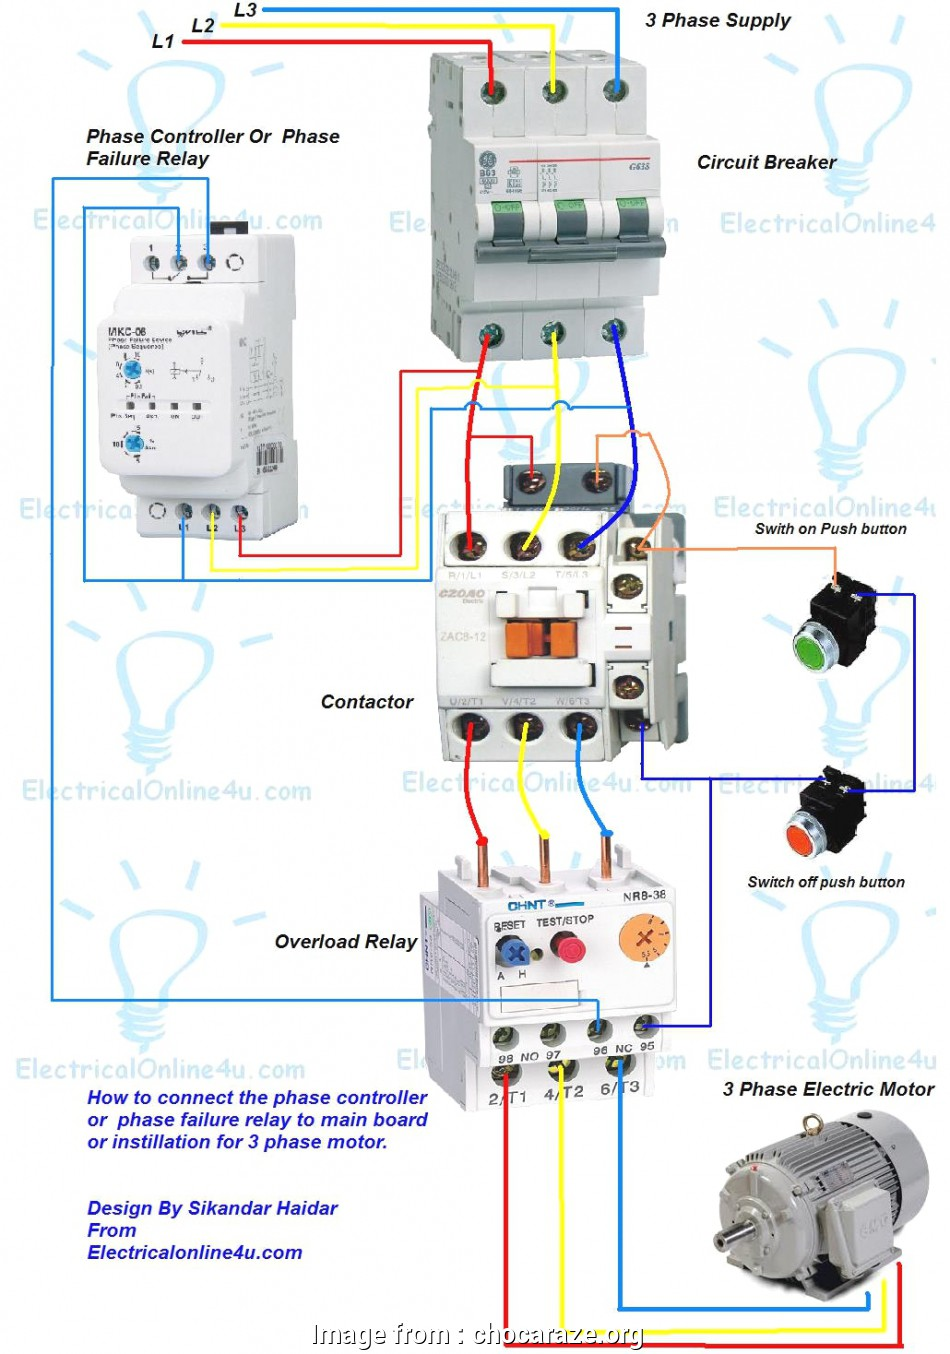 "3 Pole Contactor Wiring Diagram - Get Rid Of Wiring Diagram ...  Pole Contactor Wiring Diagram Dimmer on 208 3 phase wiring diagram, hvac defrost switch diagram, 3 pole solenoid wiring diagrams, 3 pole definite purpose contactor, 3 pole electrical switch wiring, 8145 20"" electric defrost diagram, square d motor starter wiring diagram, 3 pole double throw contactor, single phase reversing contactor diagram, 3 pole switch diagram, 3 phase motor connection diagram, reversing single phase motor wiring diagram, 3 pole relay diagram, 3 pole relay 120v, magnetic motor starter wiring diagram, relay wiring diagram, power transformer wiring diagram, motor star delta starter diagram, 3 pole contactor air conditioning, valve wiring diagram,"